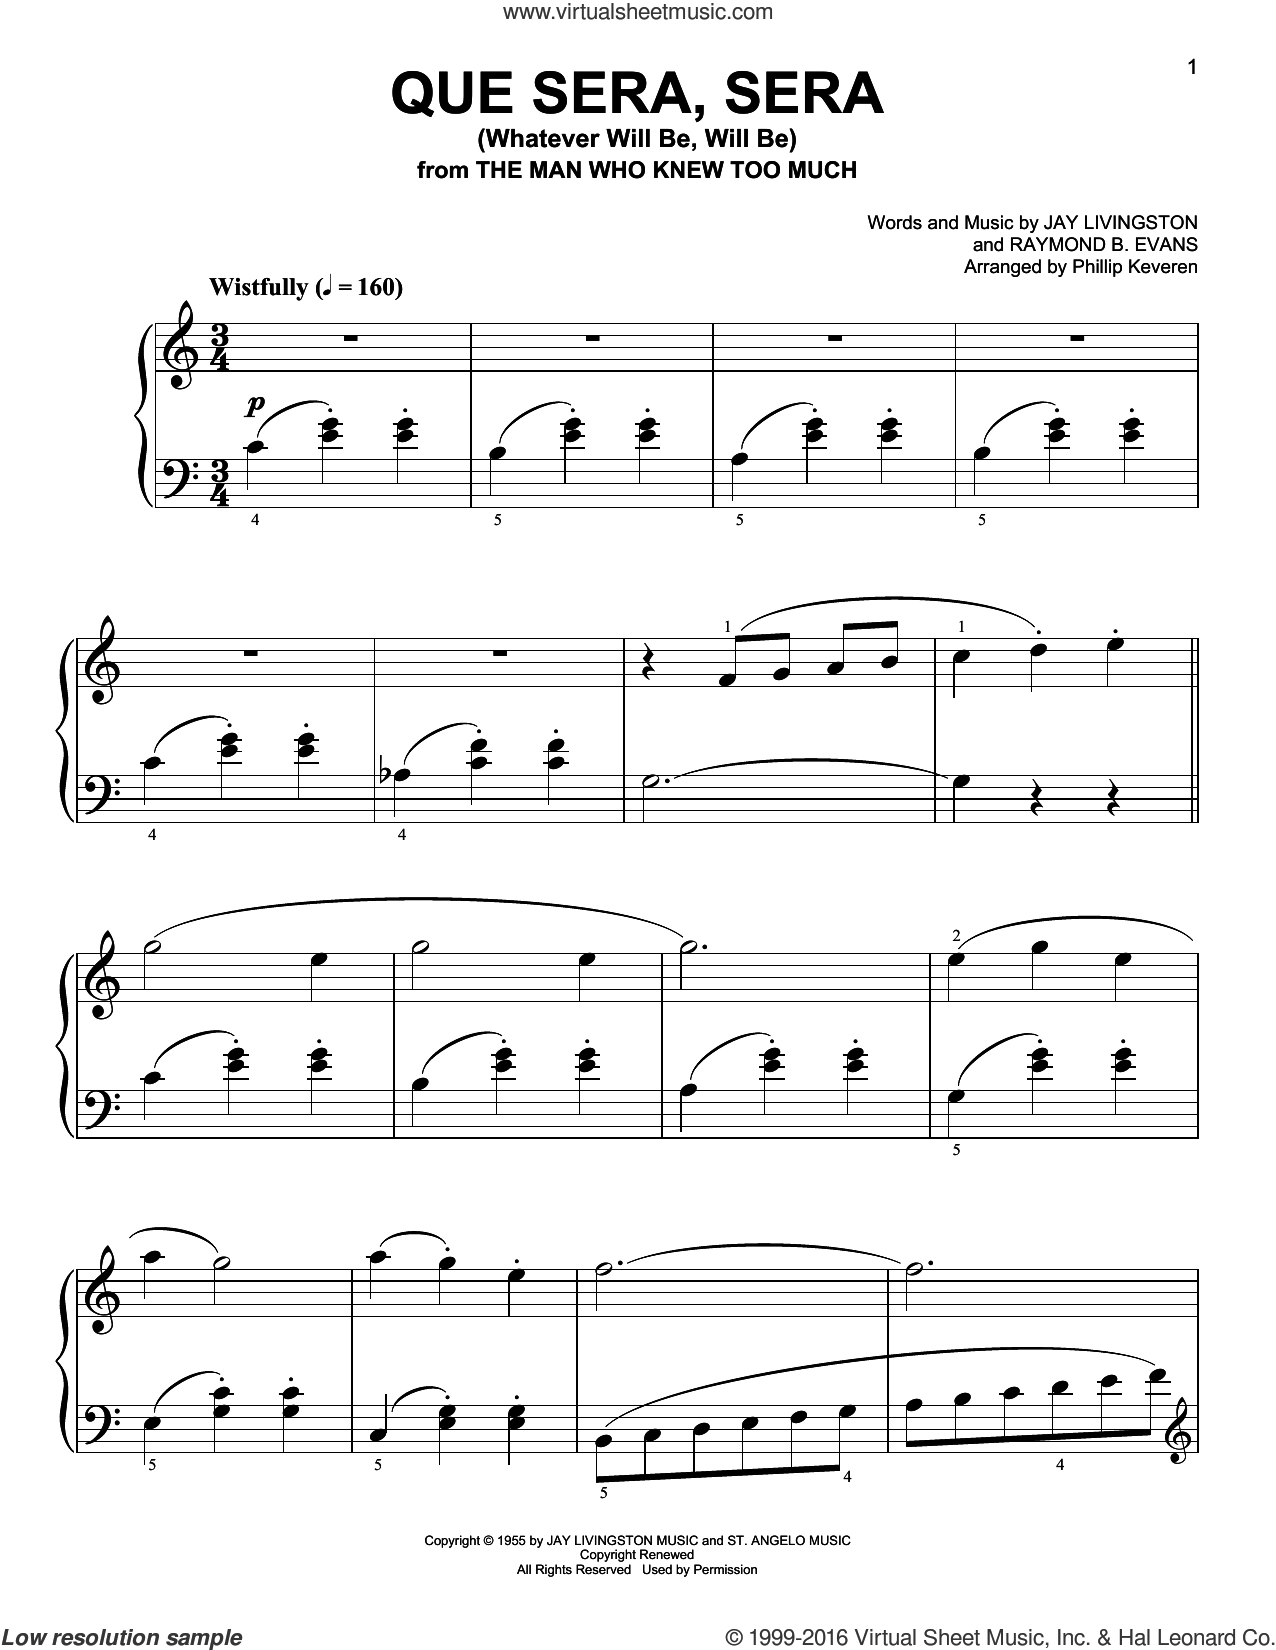 Que Sera, Sera (Whatever Will Be, Will Be) sheet music for piano solo by Jay Livingston, Phillip Keveren, Doris Day and Raymond B. Evans, easy skill level